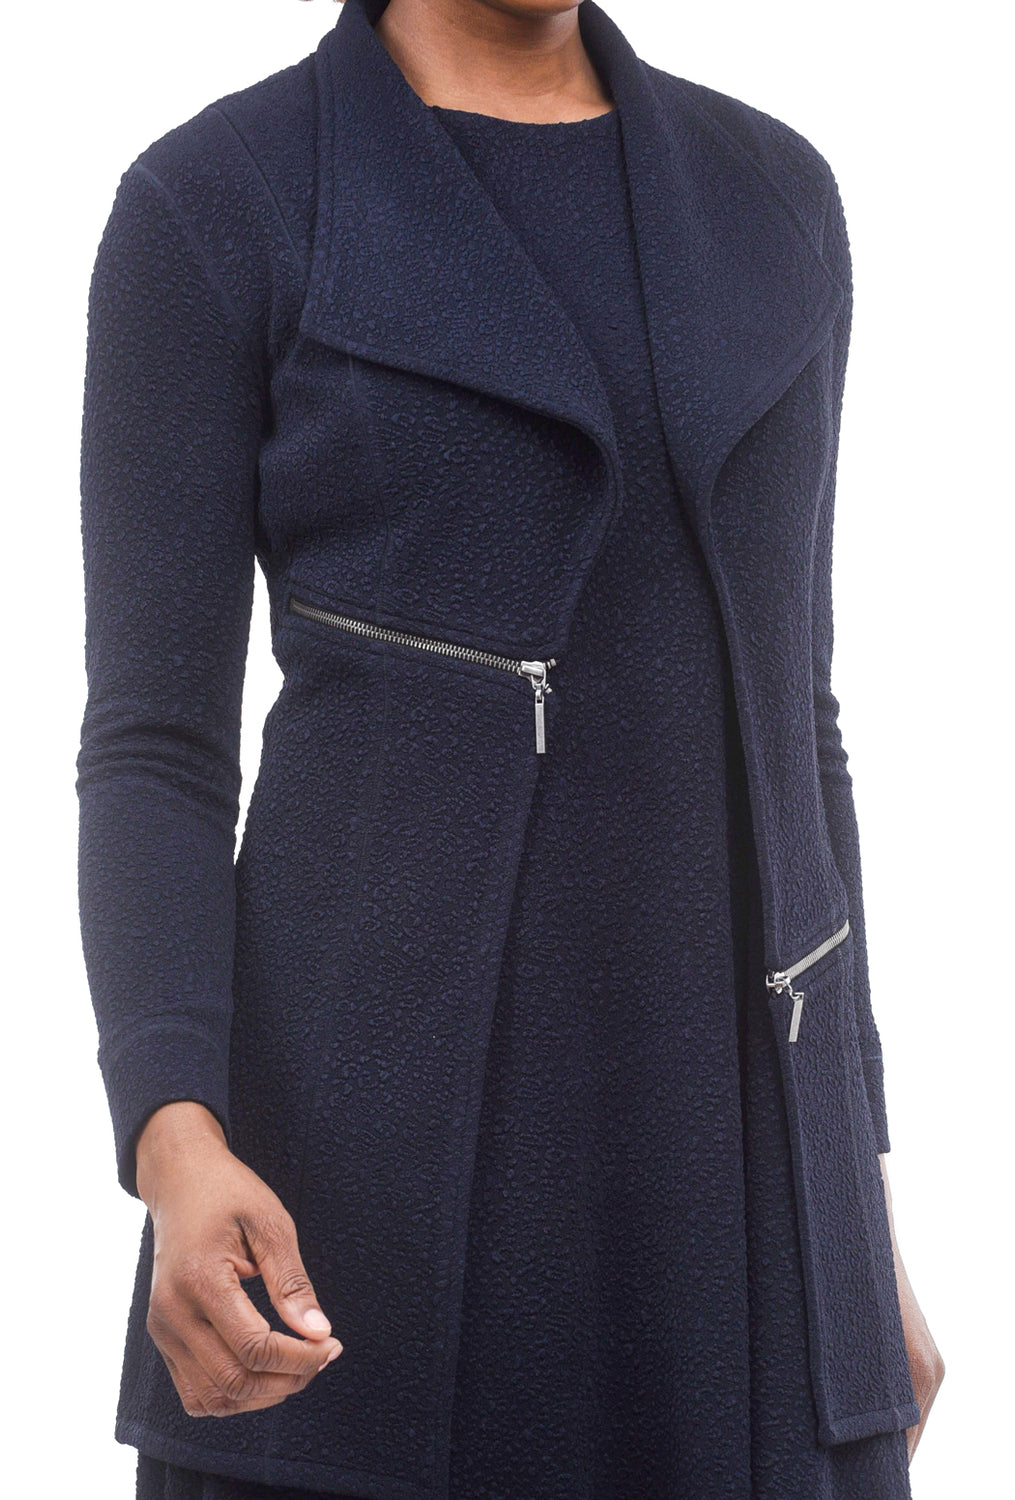 Eva Varro Pebbled Barcelona Jacket, Navy